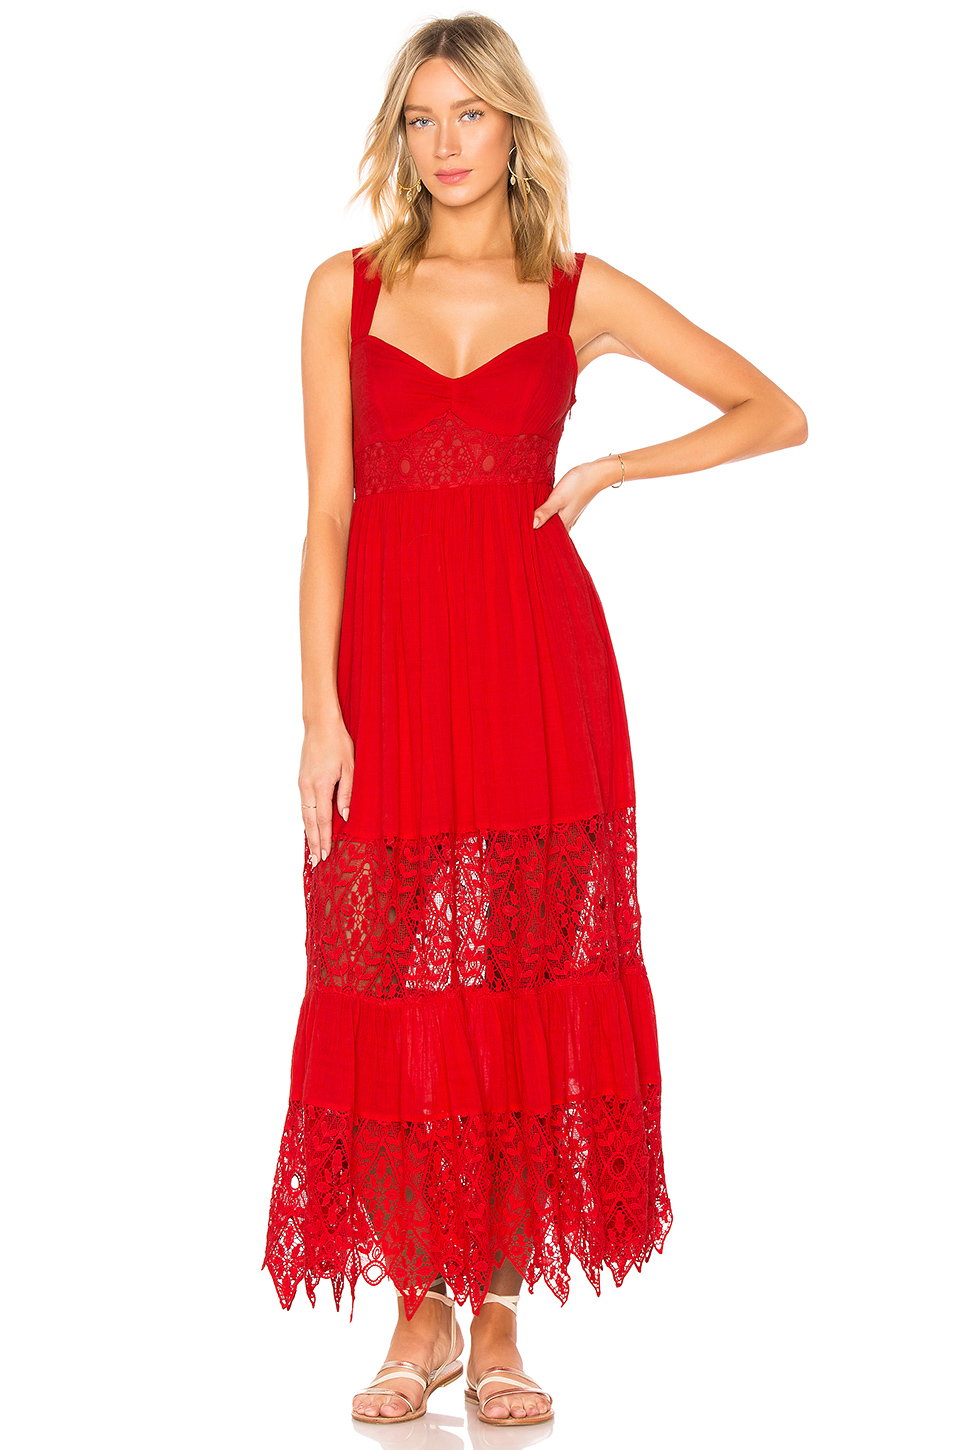 Free People Caught Your Eye Dress in Red